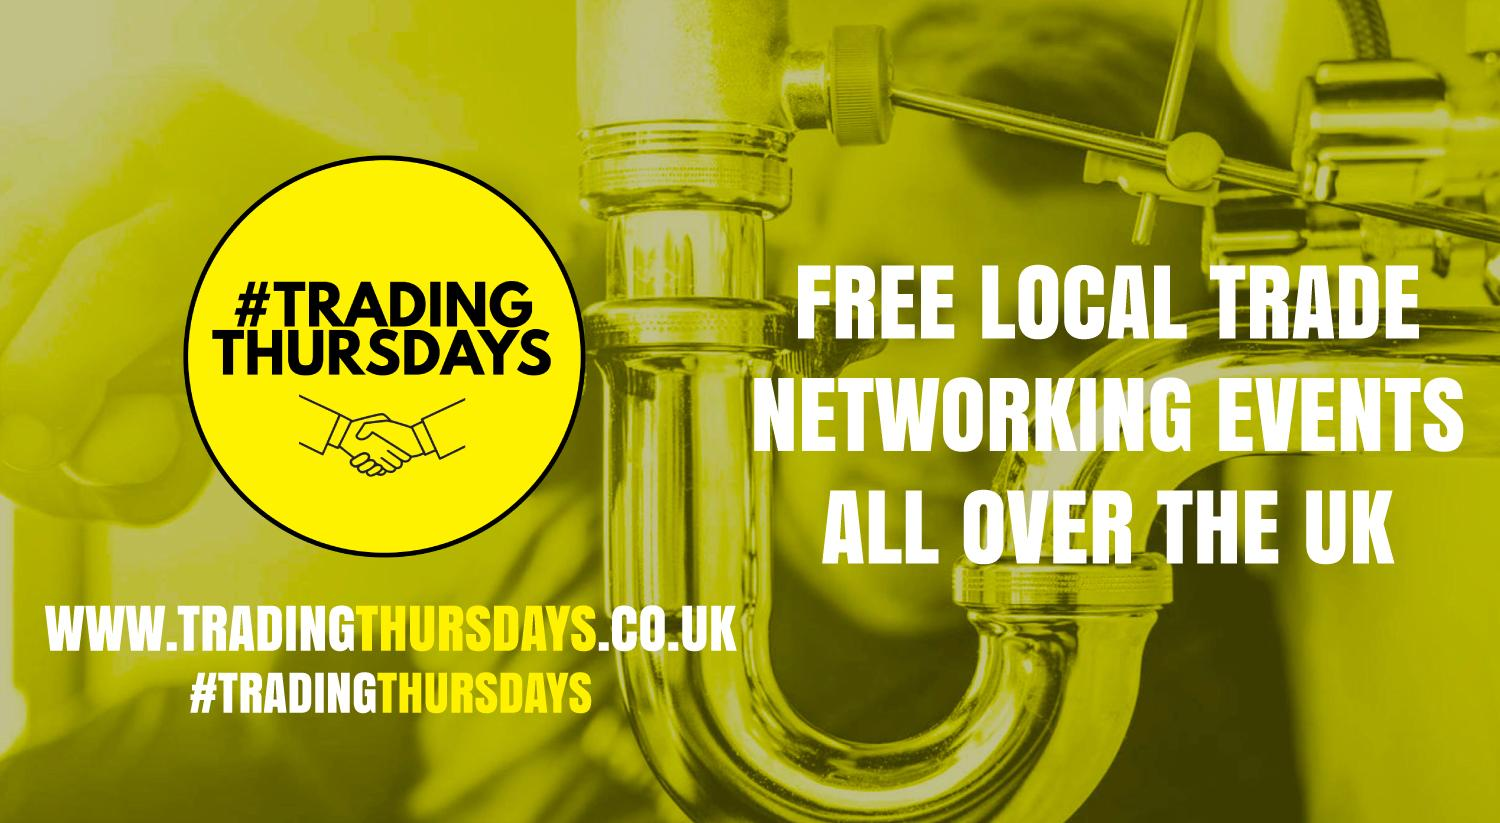 Trading Thursdays! Free networking event for traders in East Didsbury